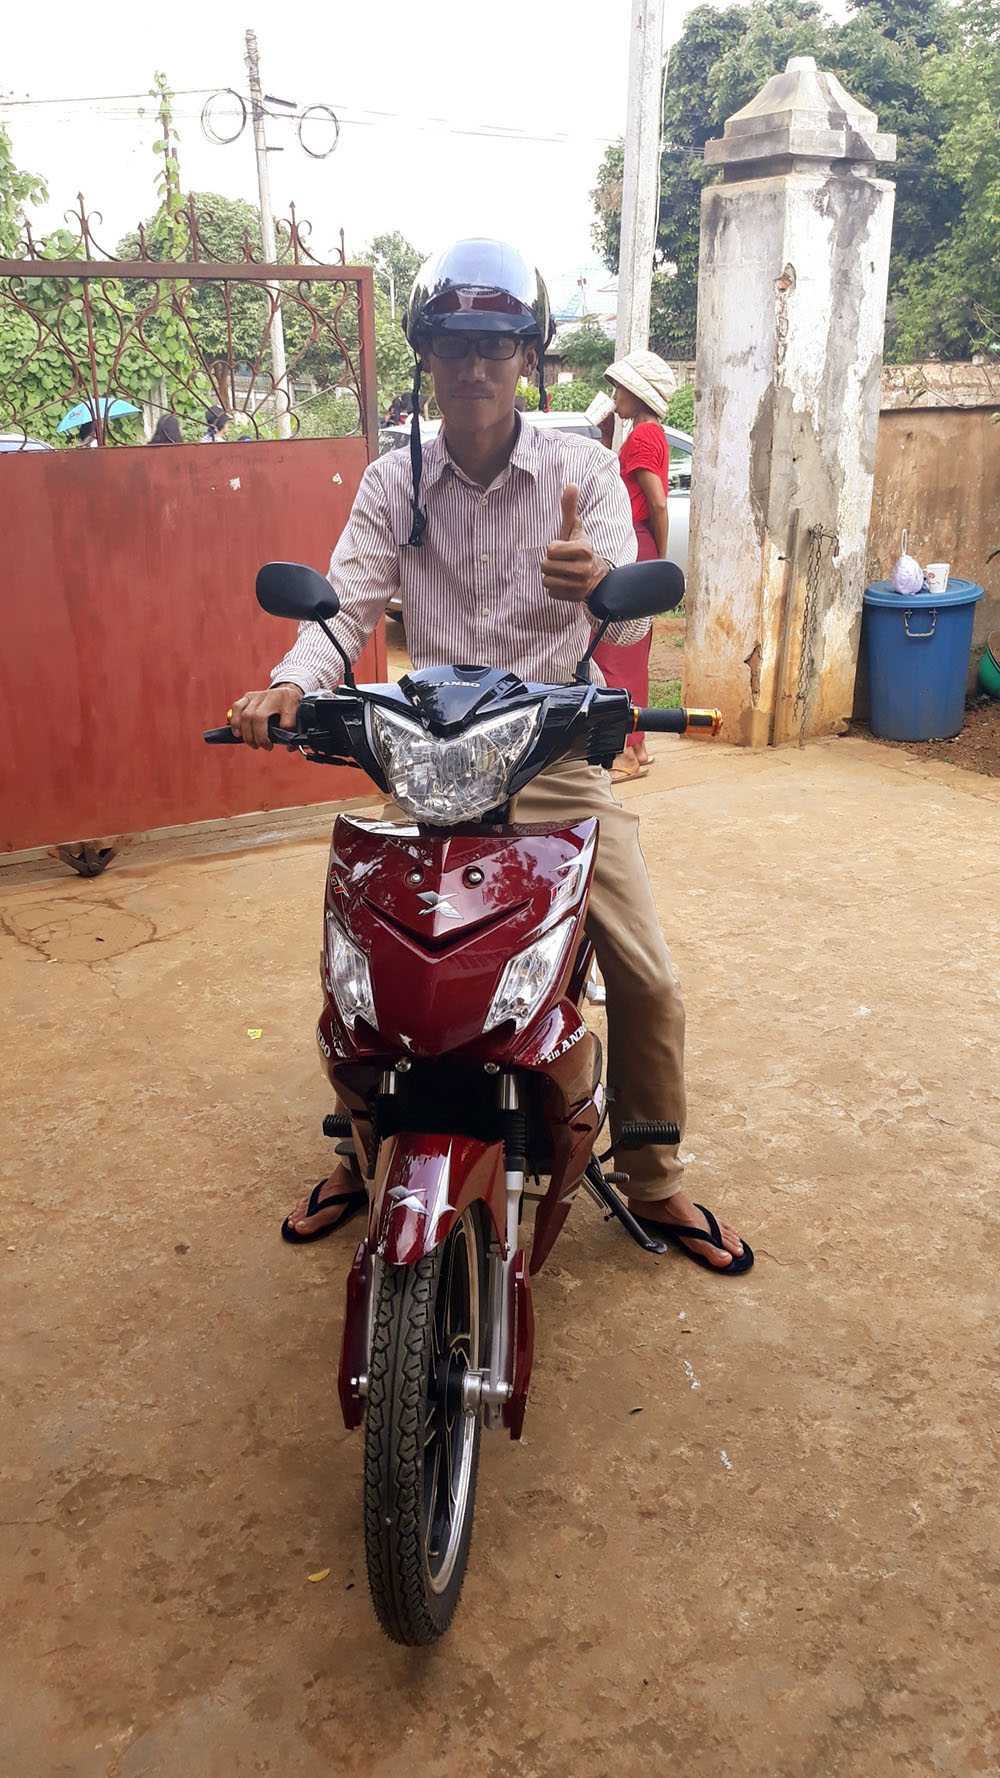 Aung and his motorbike